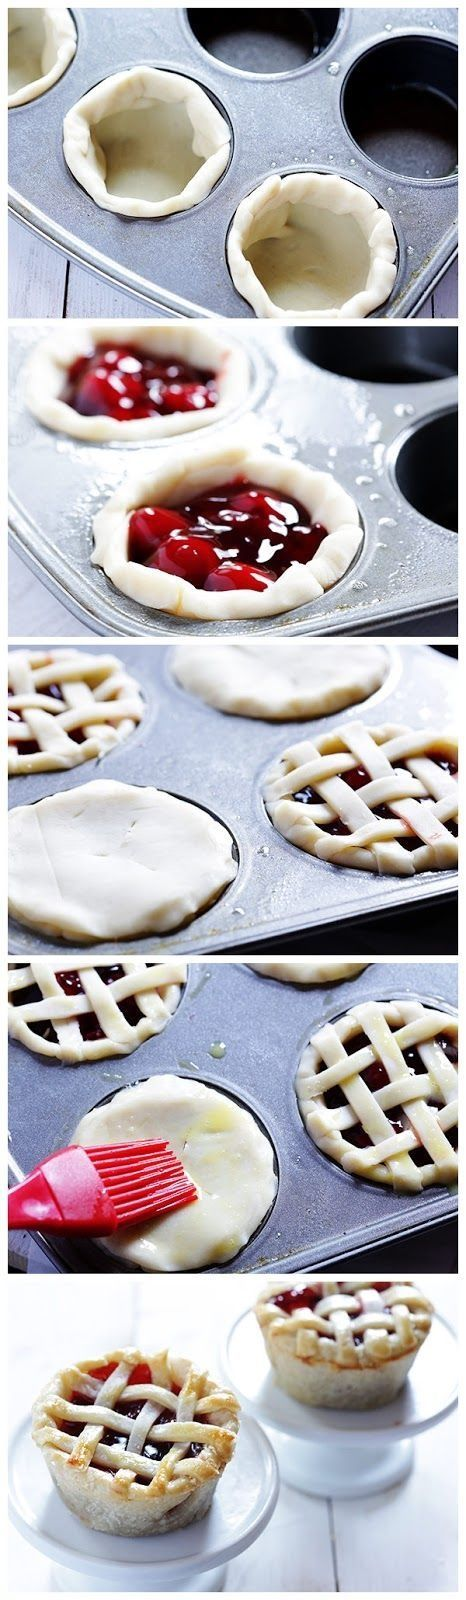 DIY Mini Pies baking recipe pies recipes ingredients instructions desert recipes easy recipes desert recipe